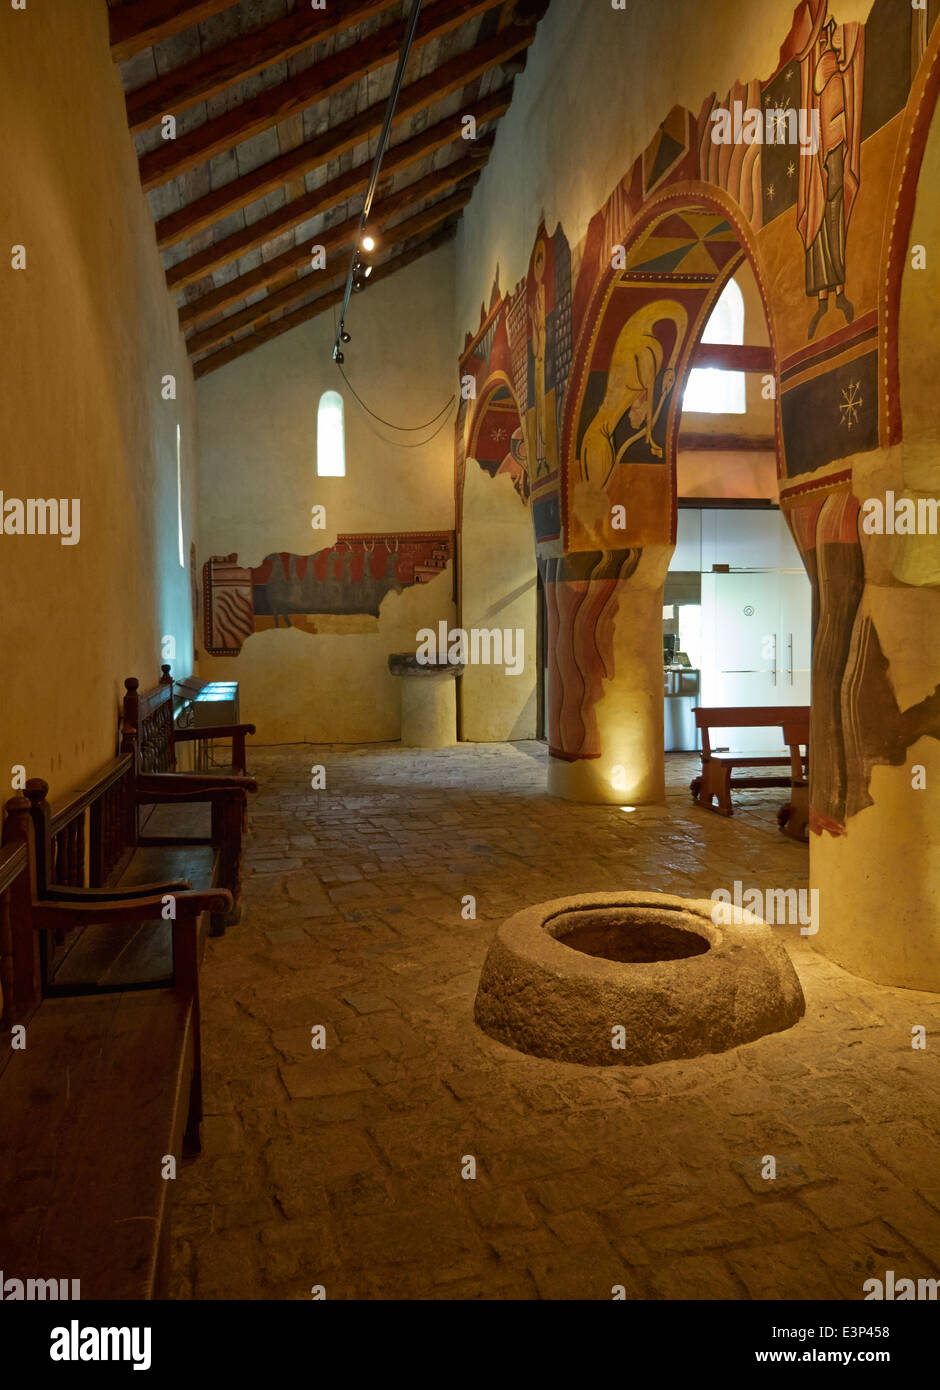 Church of Saint Joan de Boi in the Vall de Boi, Spain. Interior wall paintings and ancient font. - Stock Image